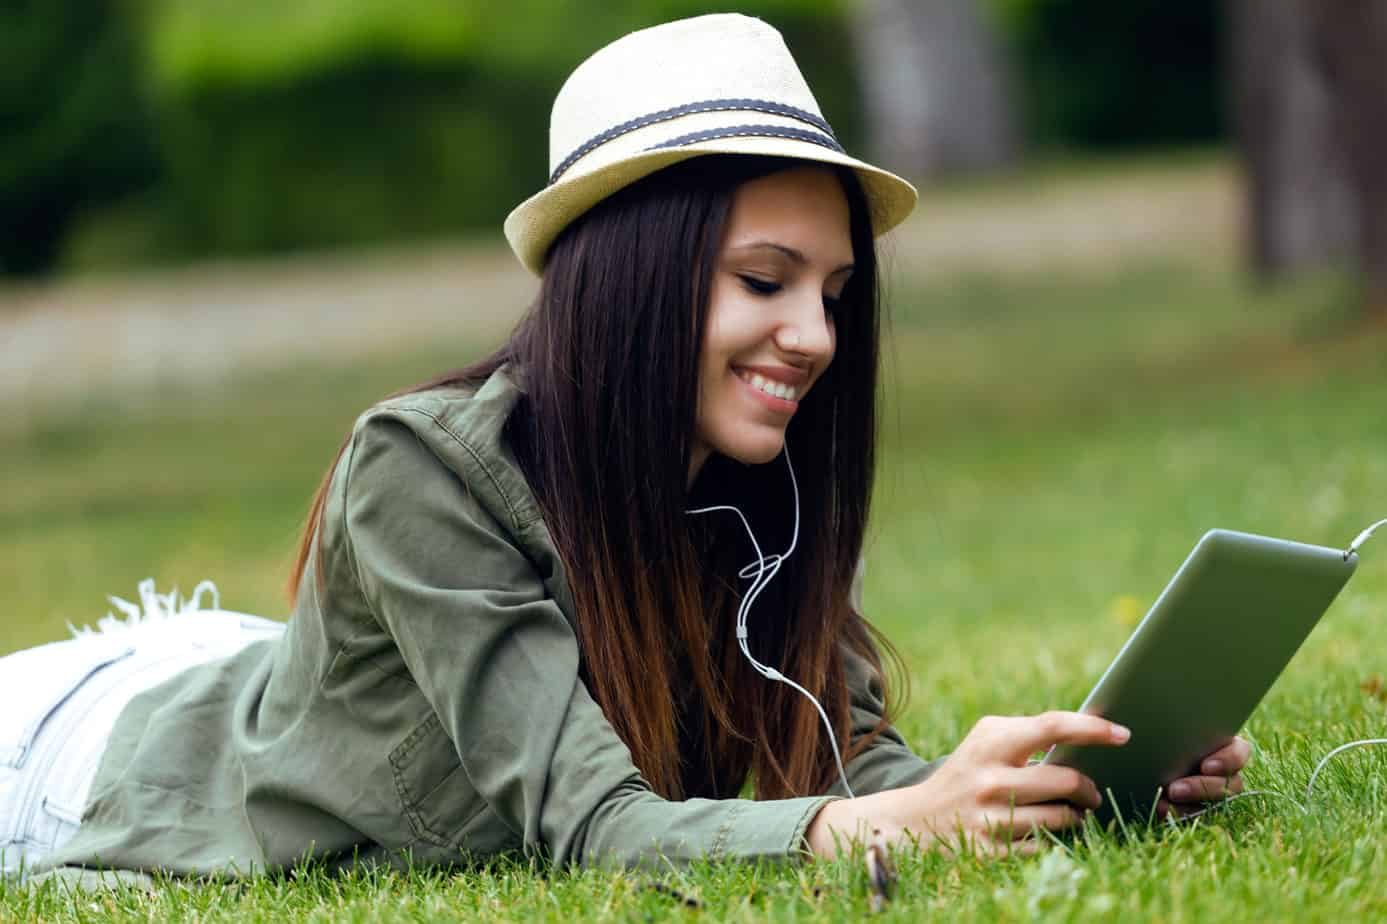 ebooks can be read even when the reader is not online